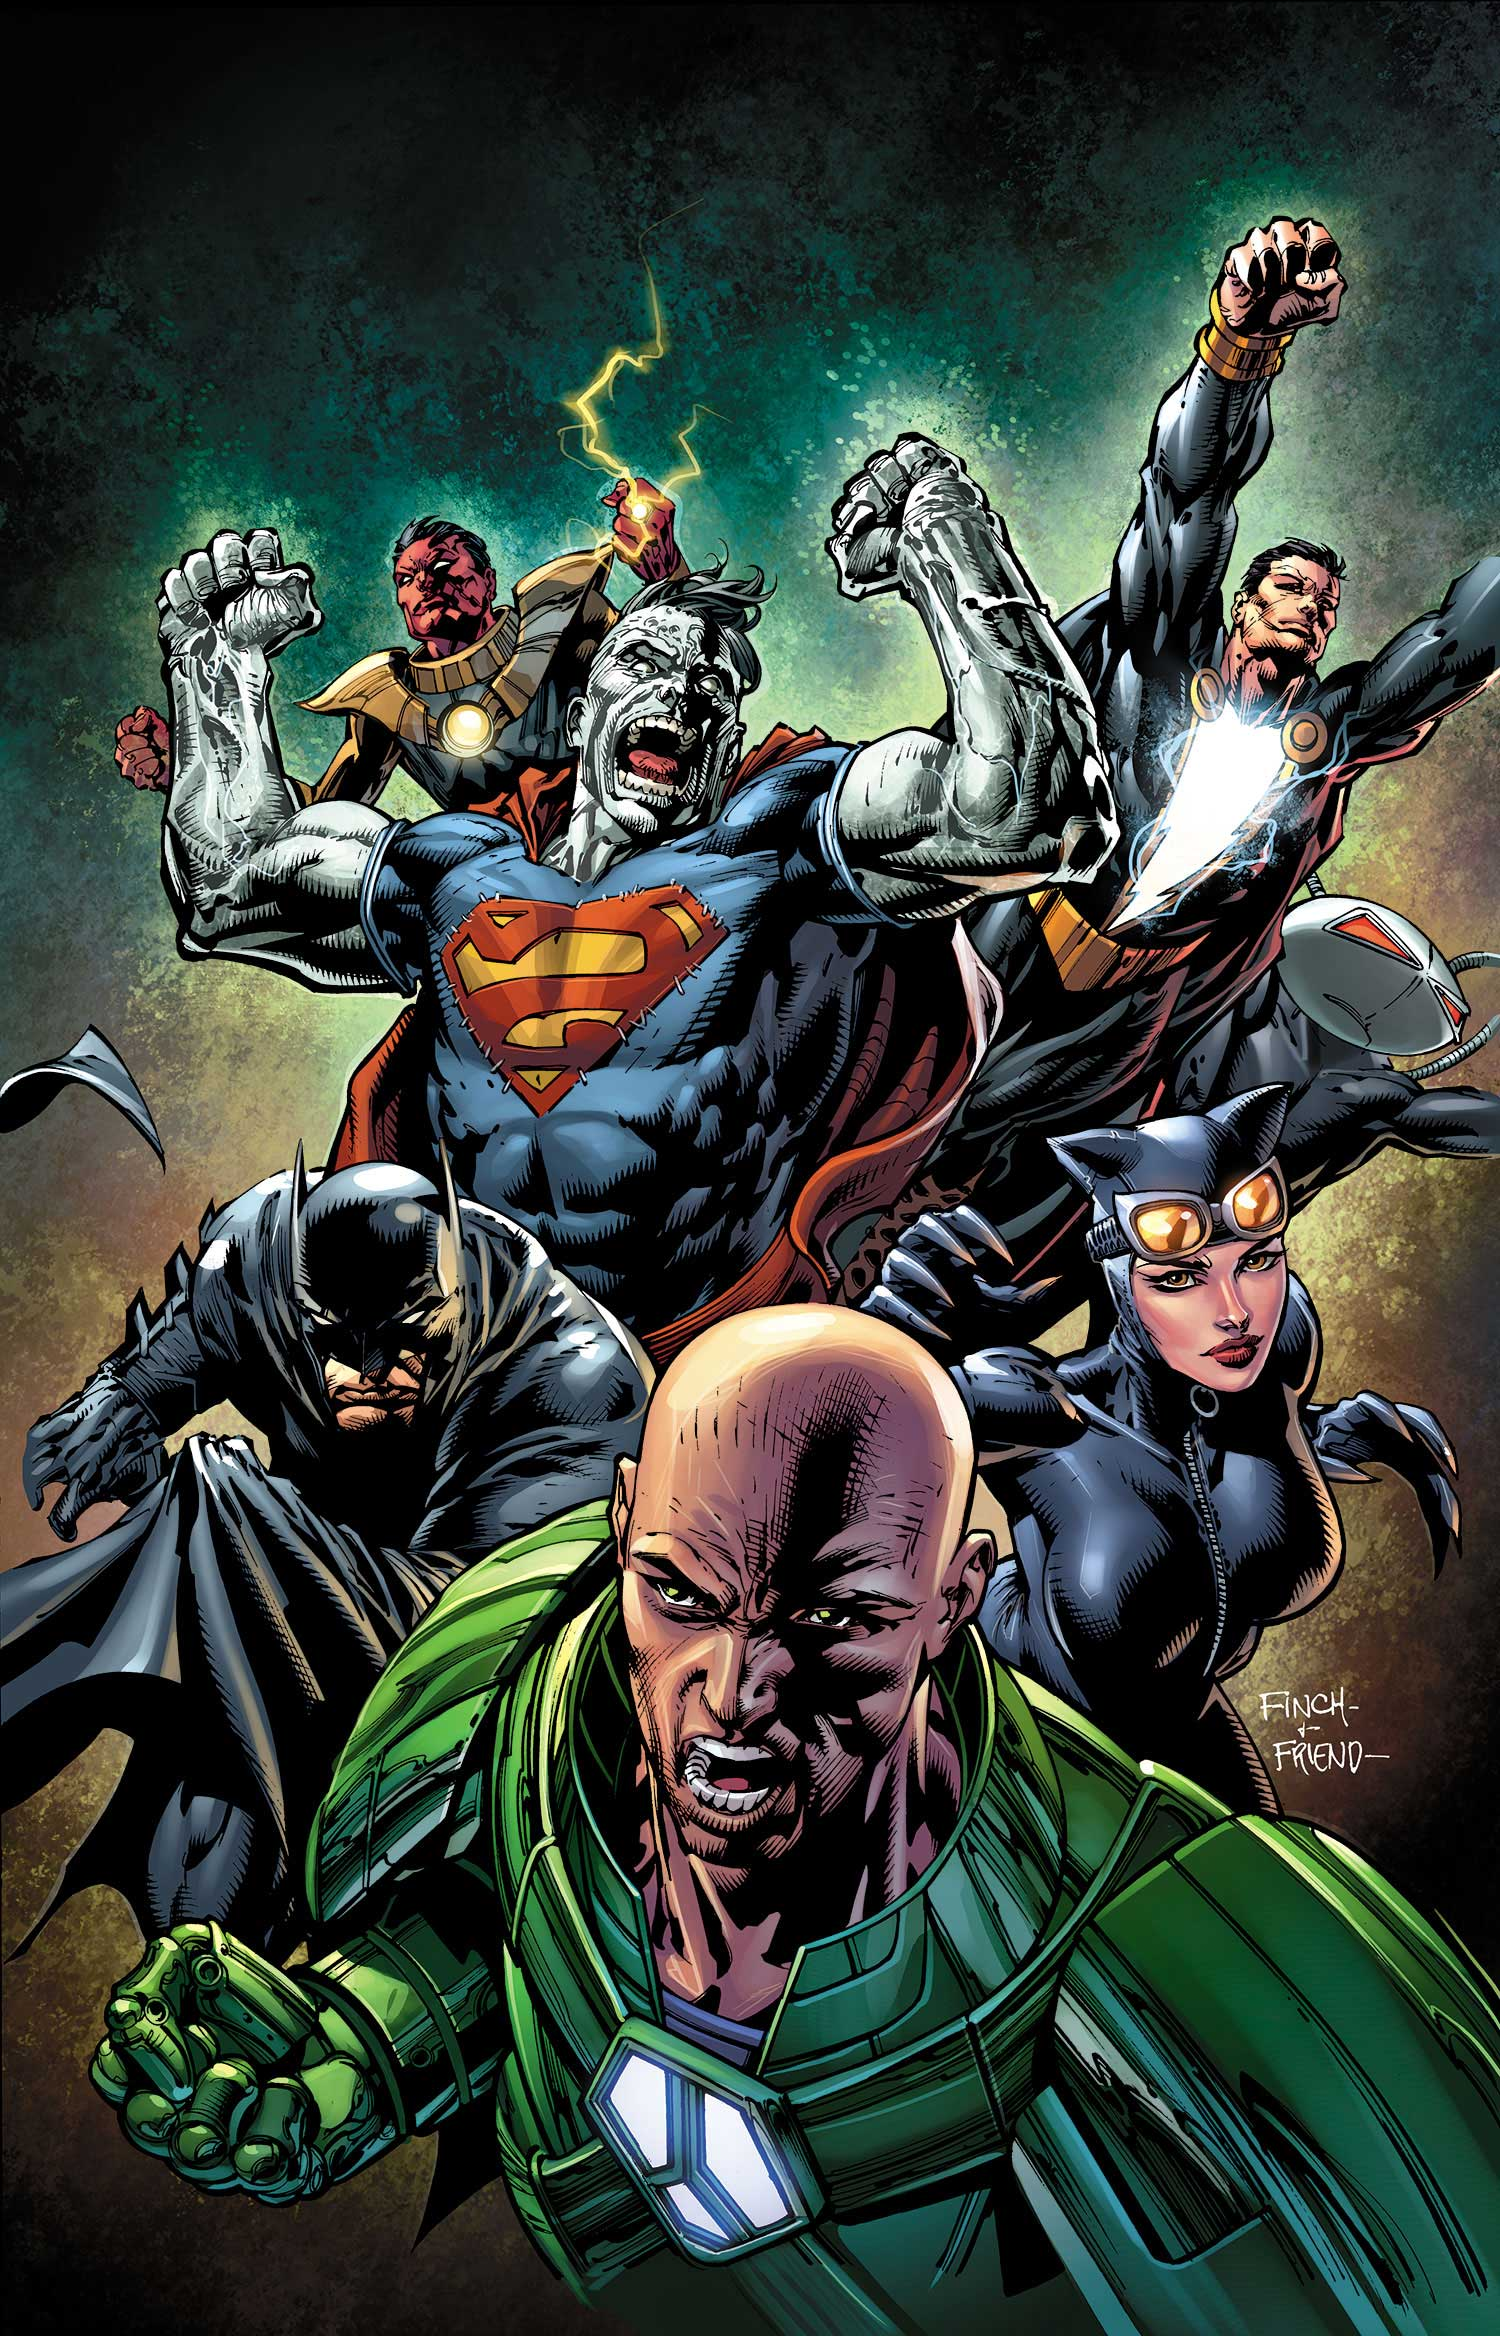 Forever Evil #5 cover by David Finch and Richard Friend